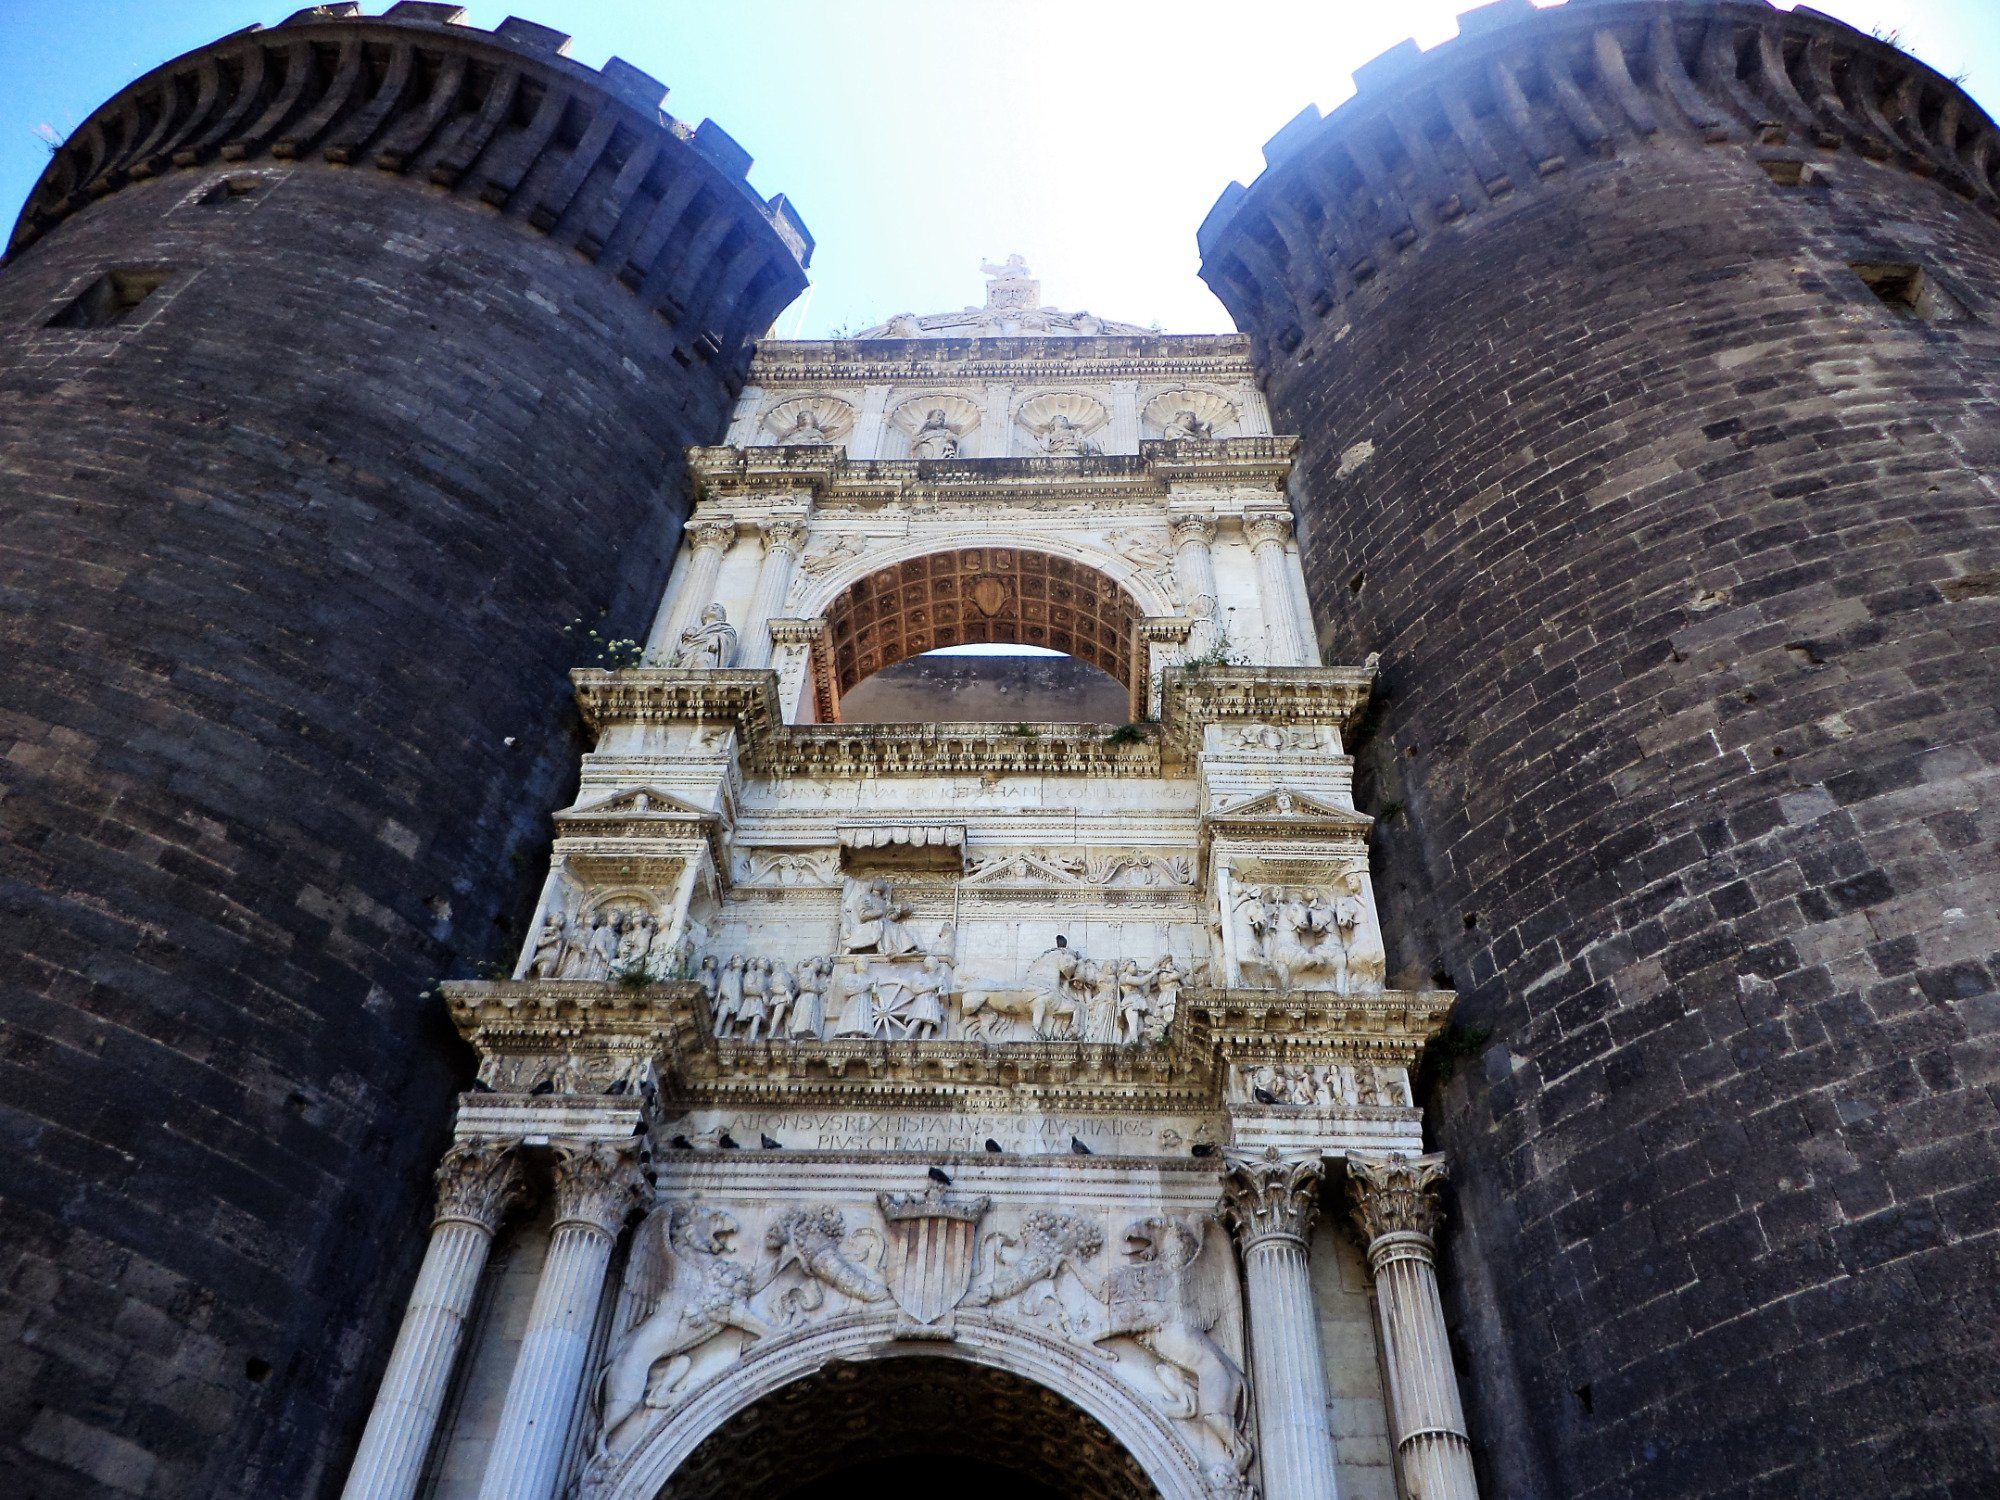 Tours in Pompei and Naples